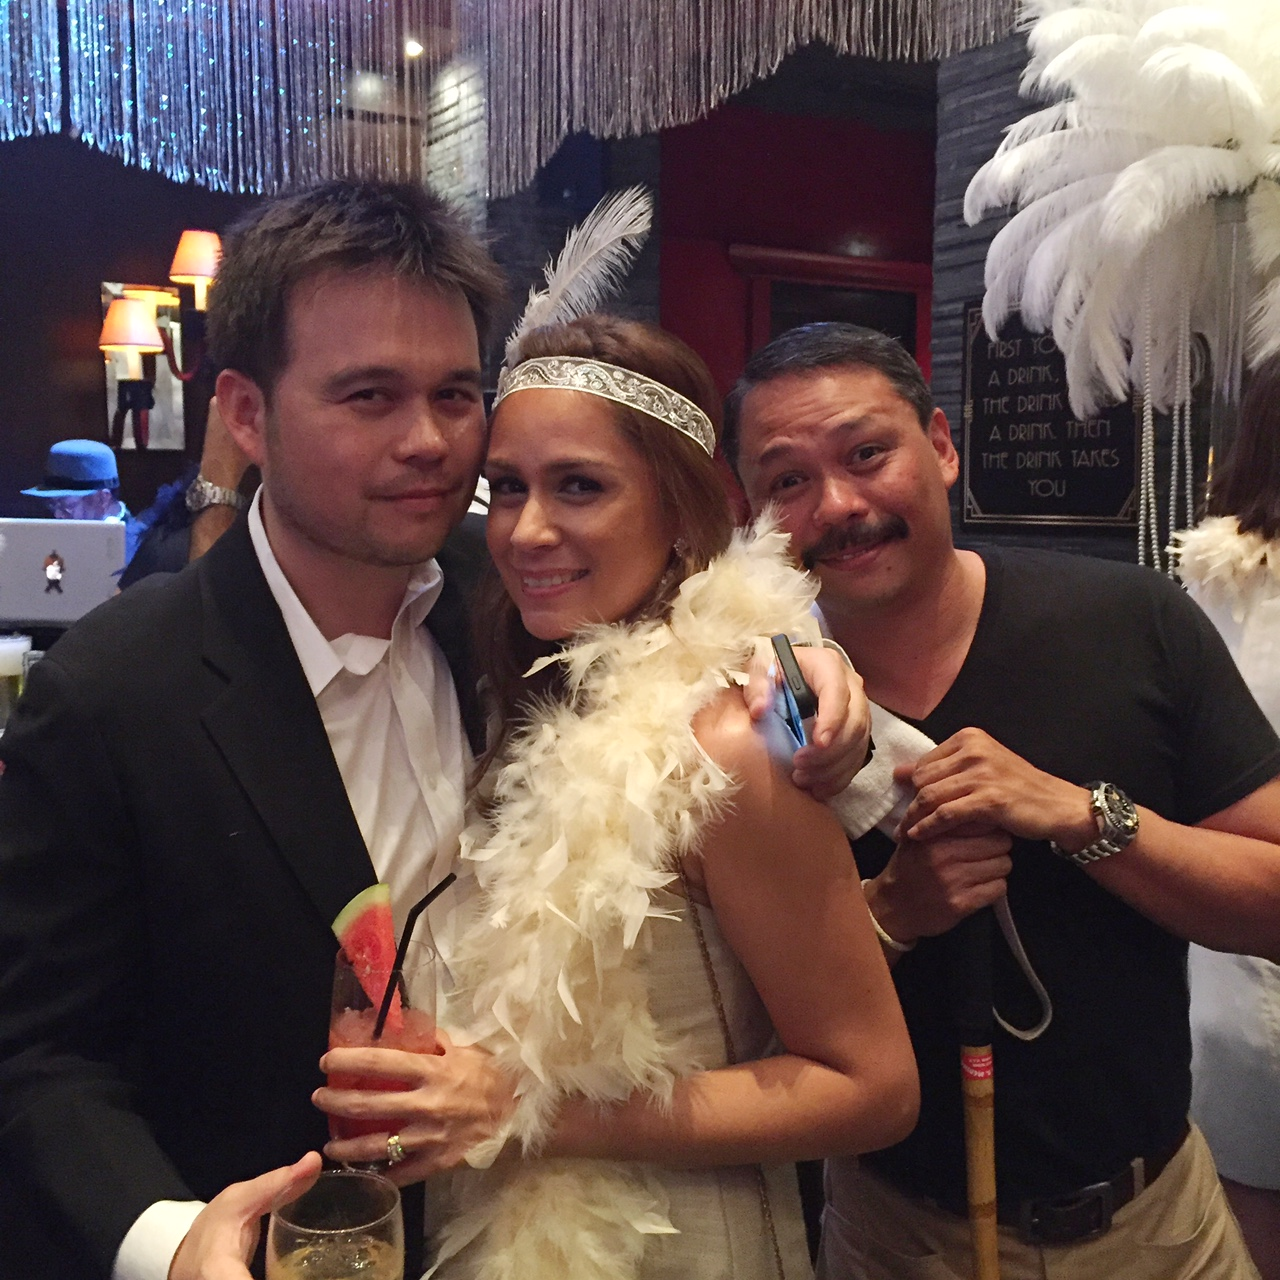 (From L-R) Ino Olondriz with his charming wife, Natalia and good friend, Coco Garcia